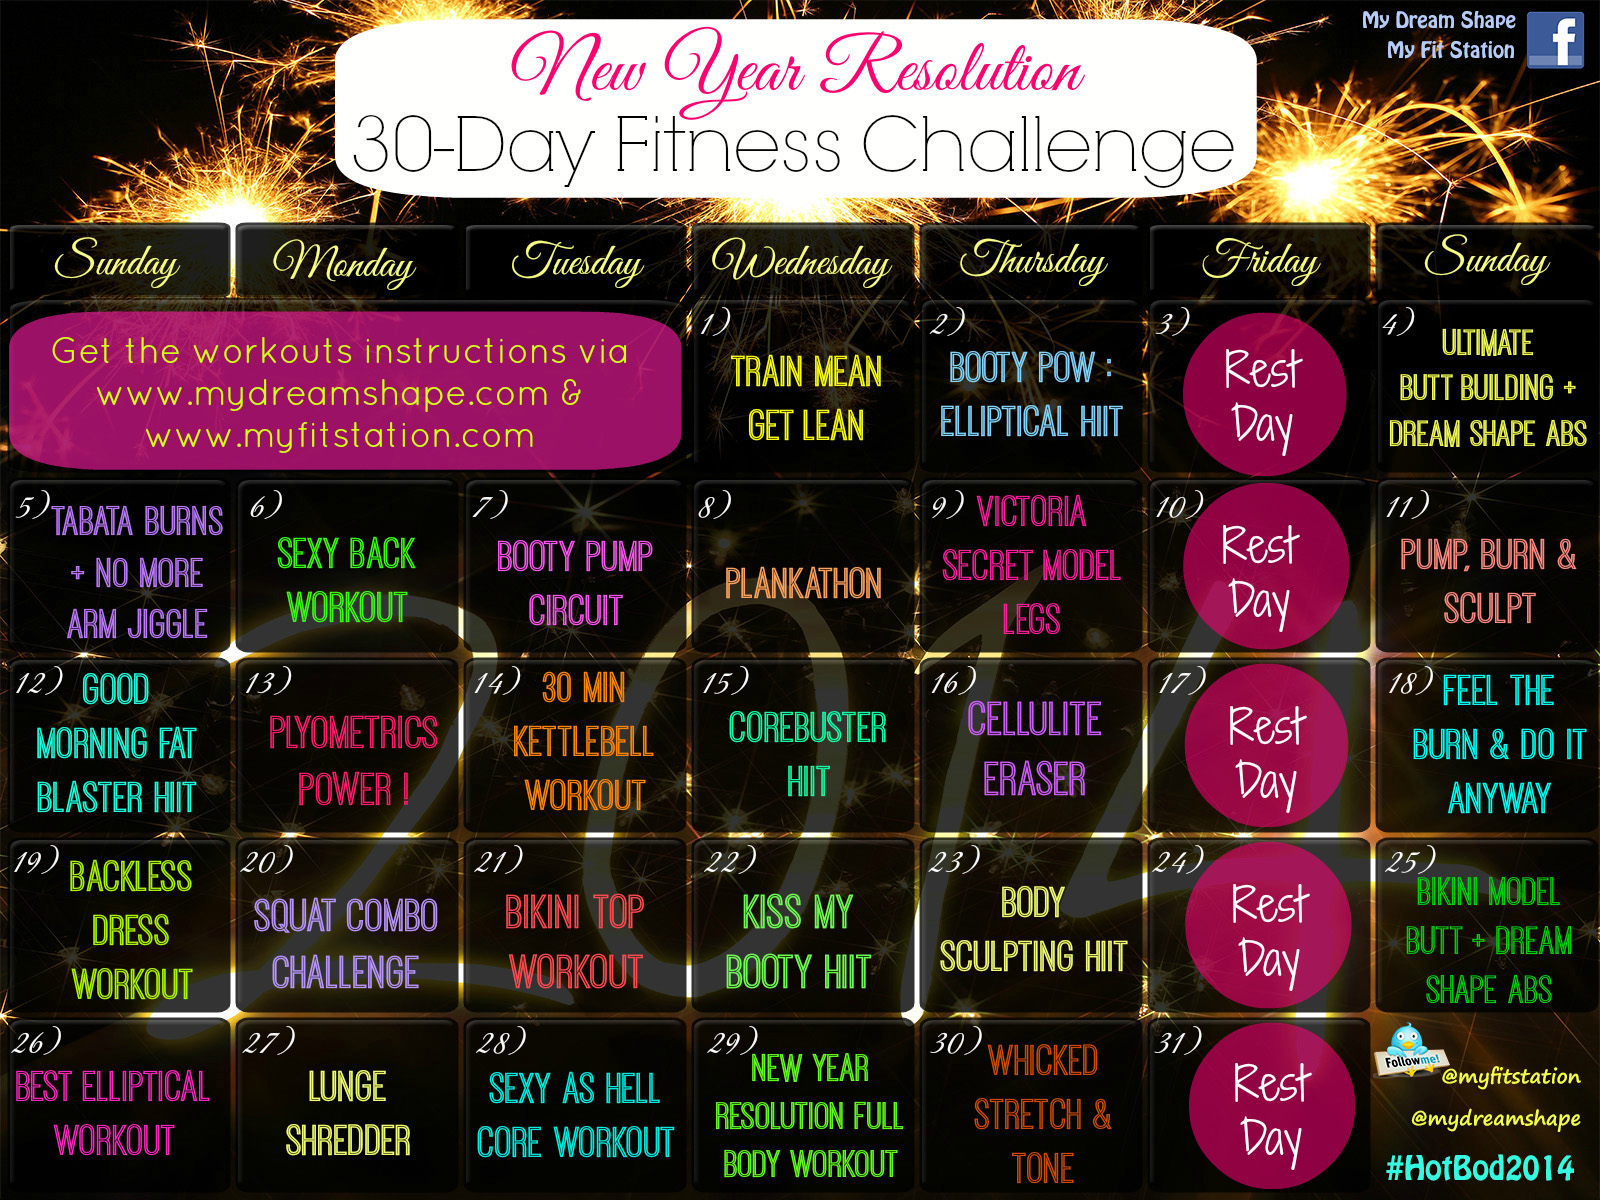 New Year's Resolution Fitness Challenge – My Dream Shape! Inside January Fitness Printable Challenge